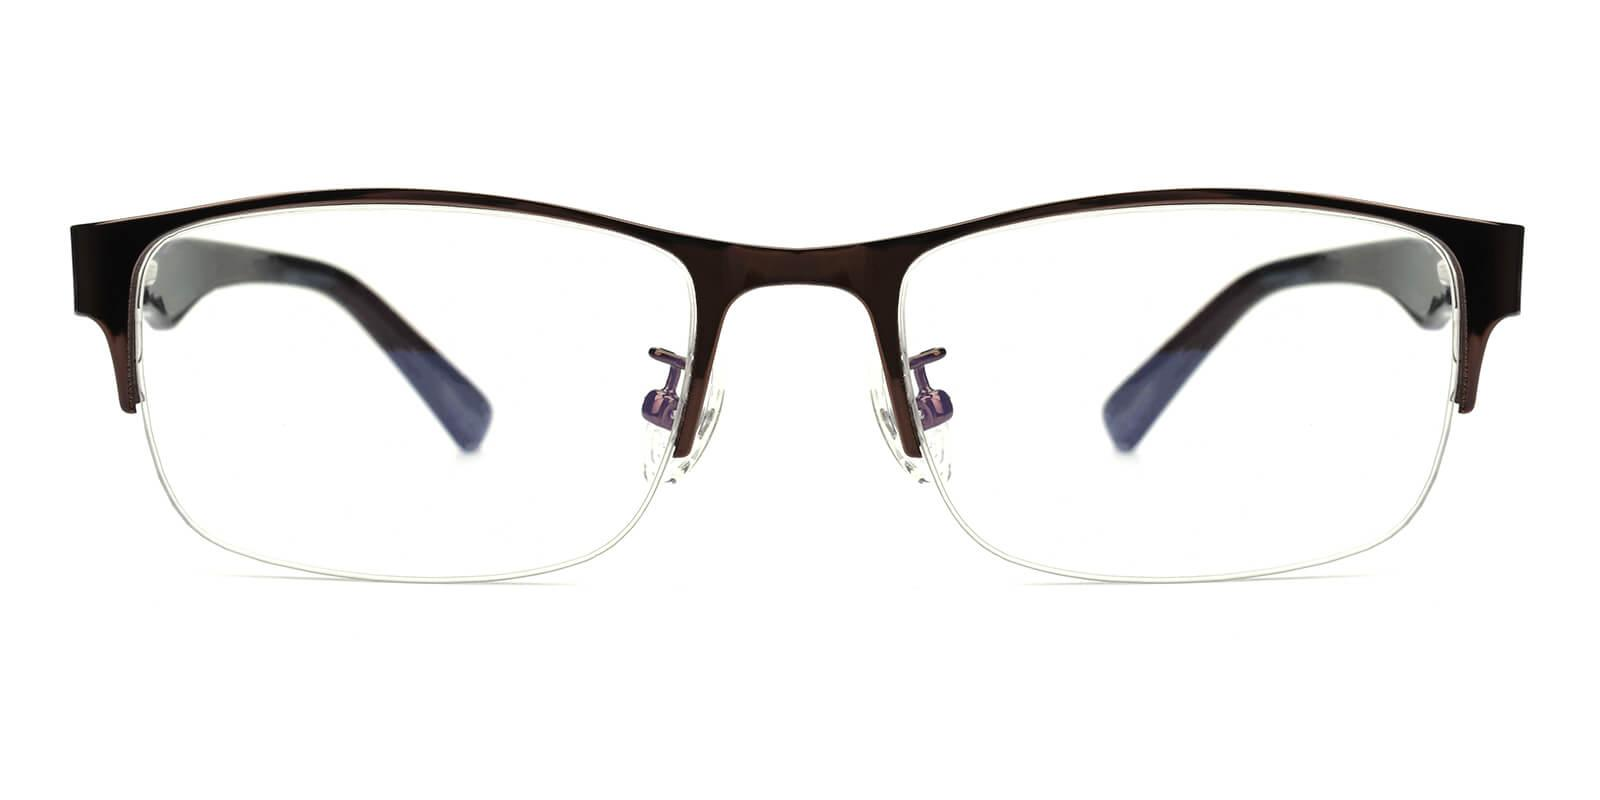 Sapphire-Brown-Rectangle-Metal-Eyeglasses-additional2